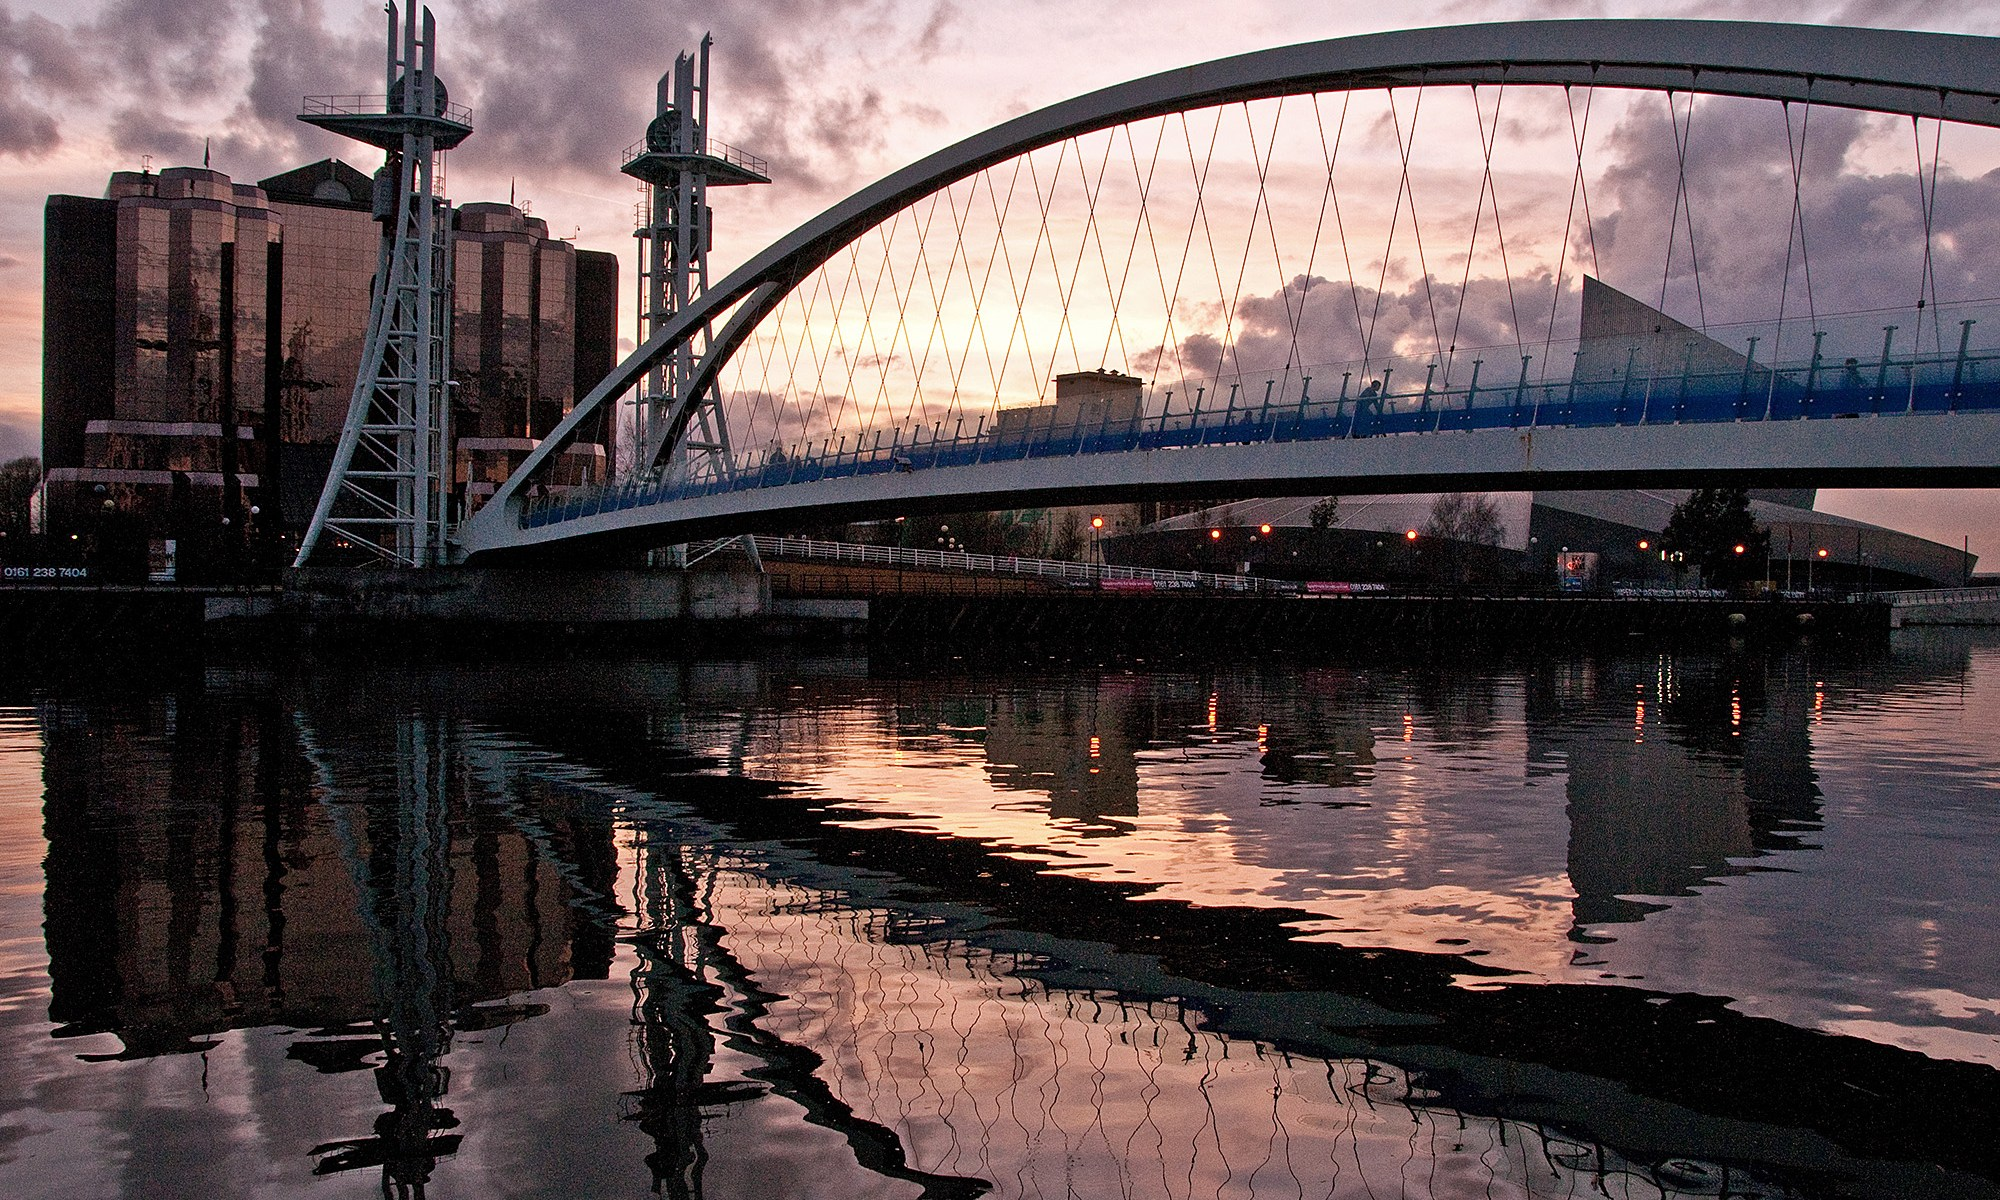 Quays Millennium Bridge at Sunset